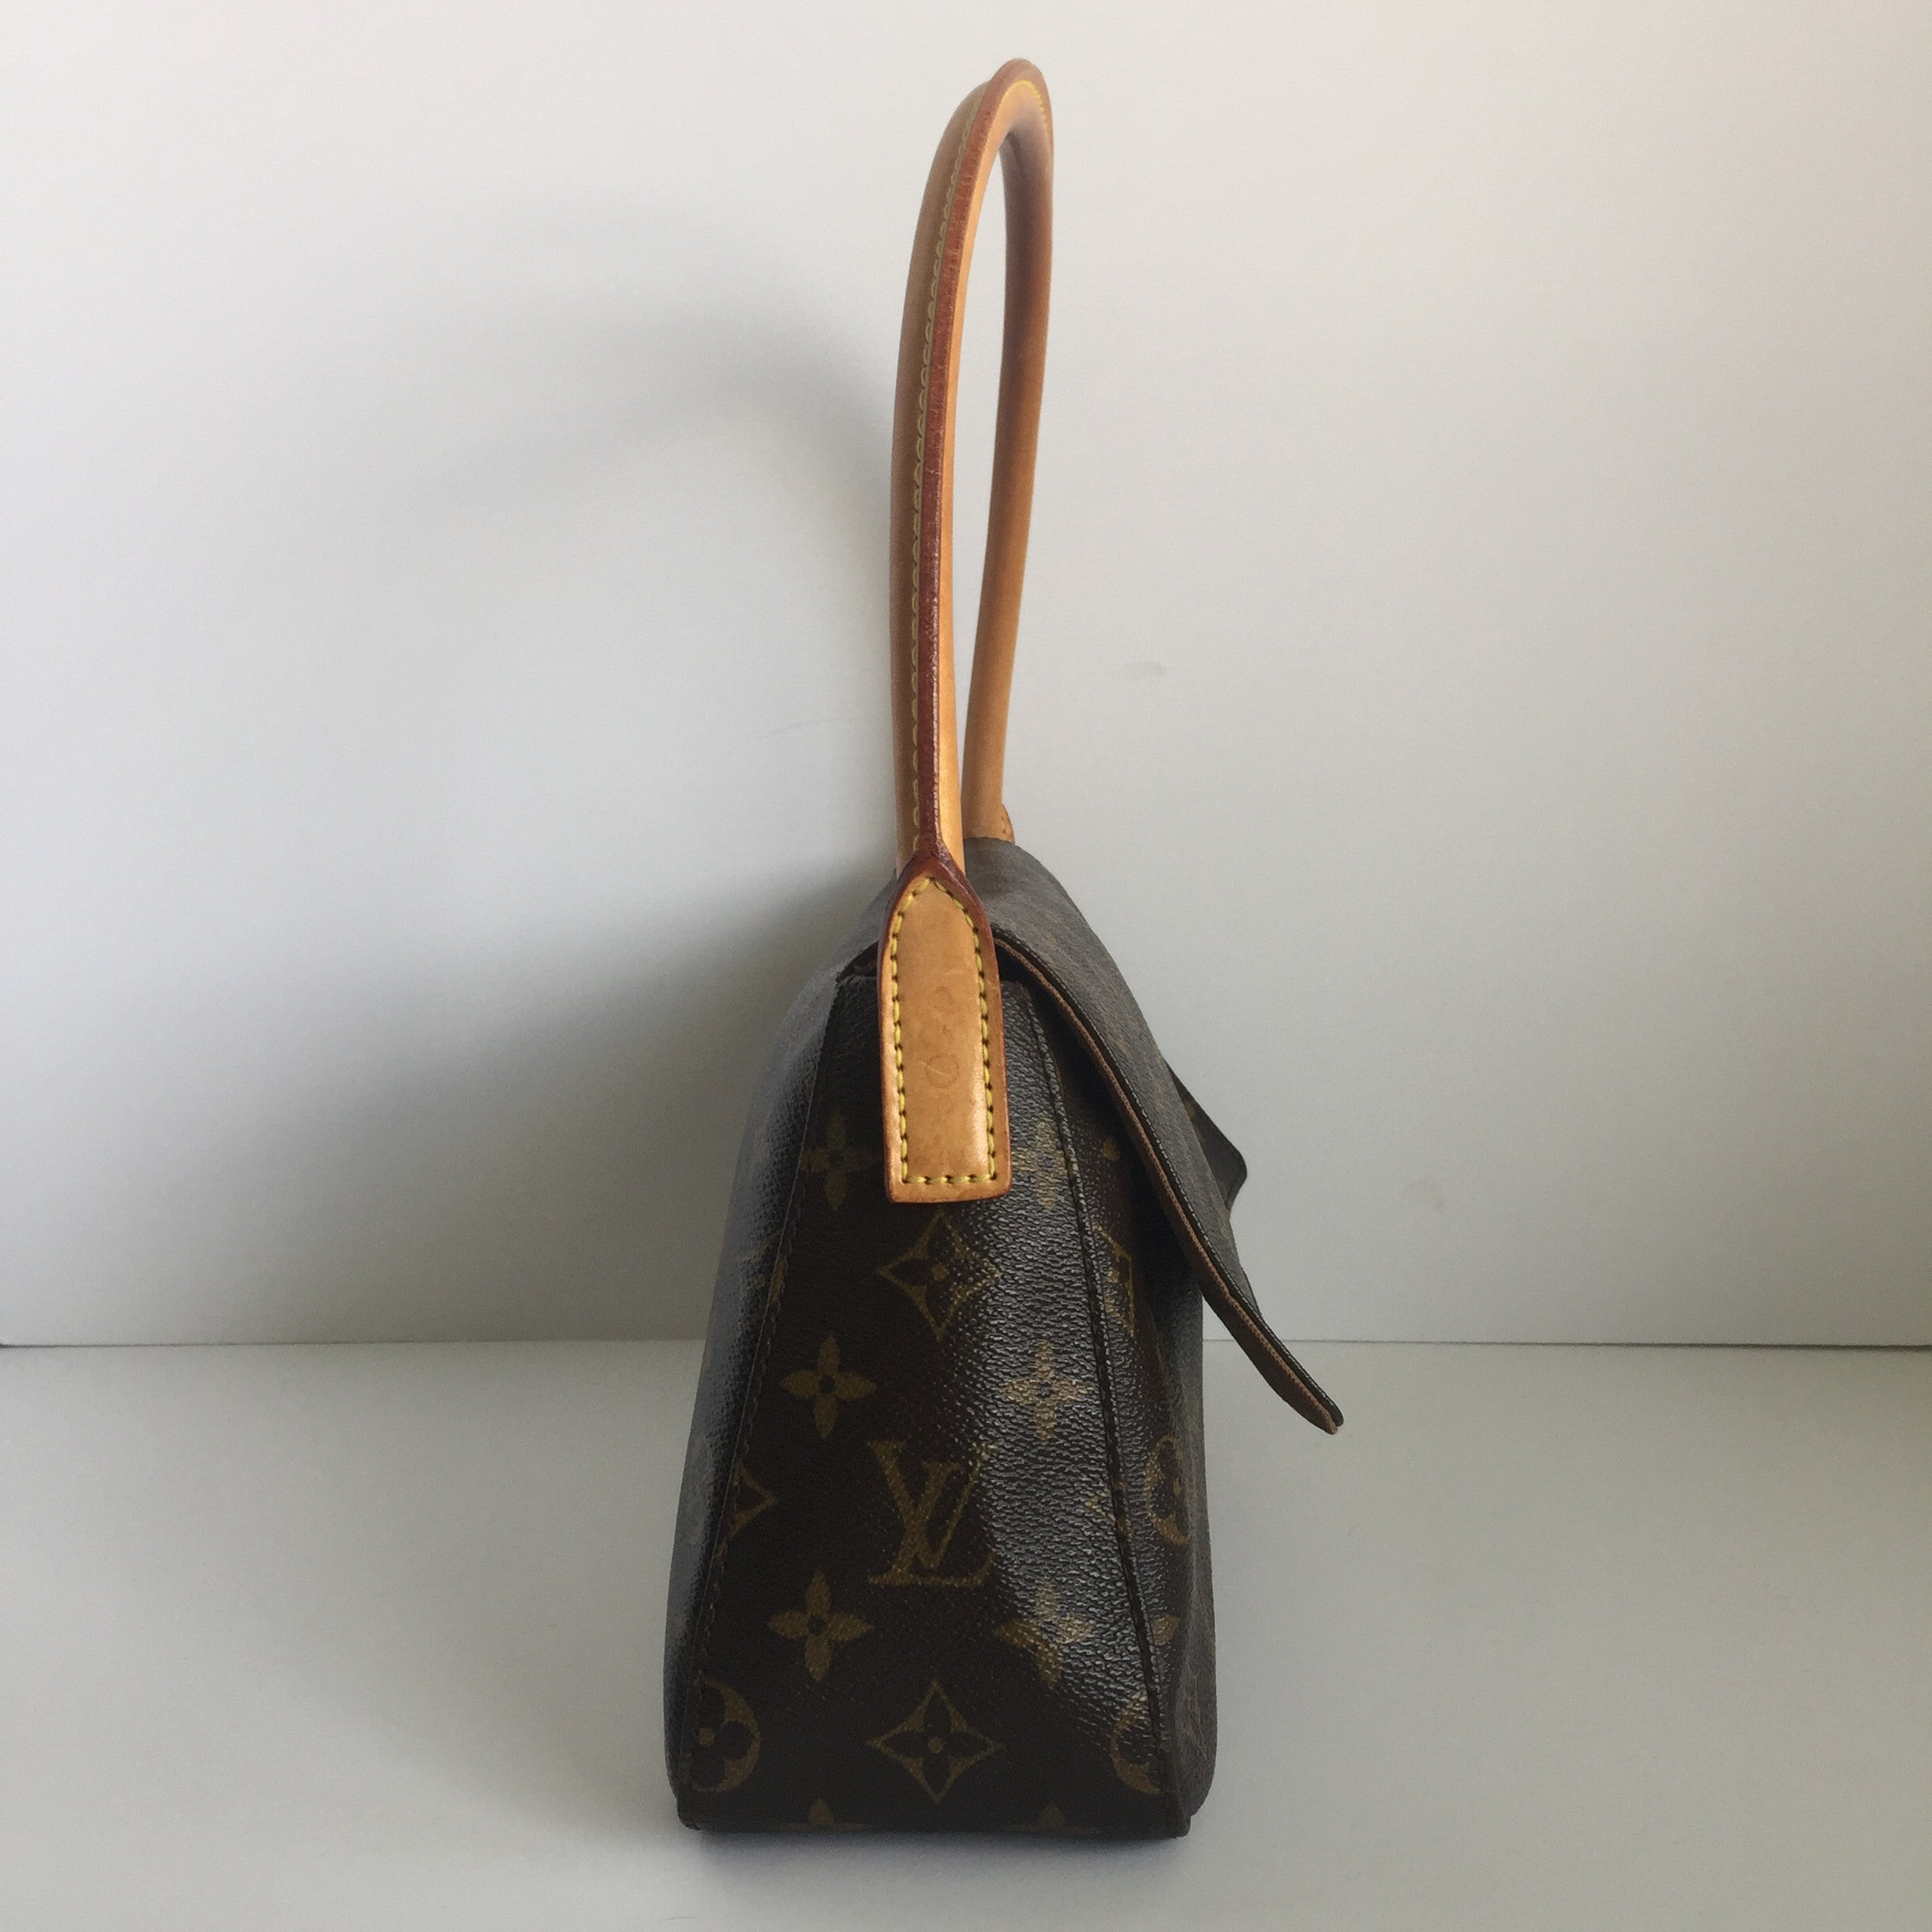 Authentic LOUIS VUITTON Looping PM